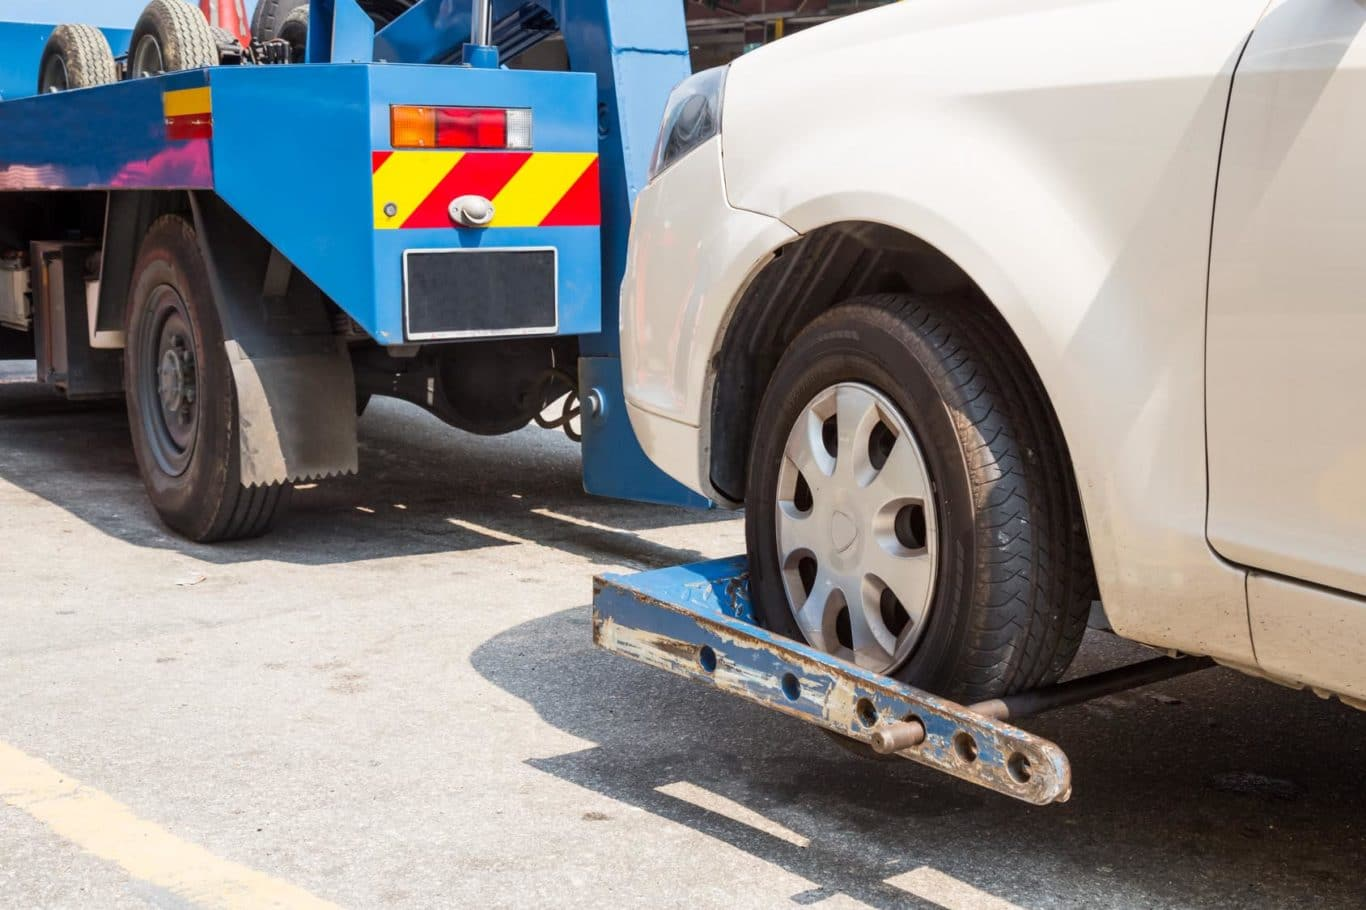 Woodenbridge expert Towing services